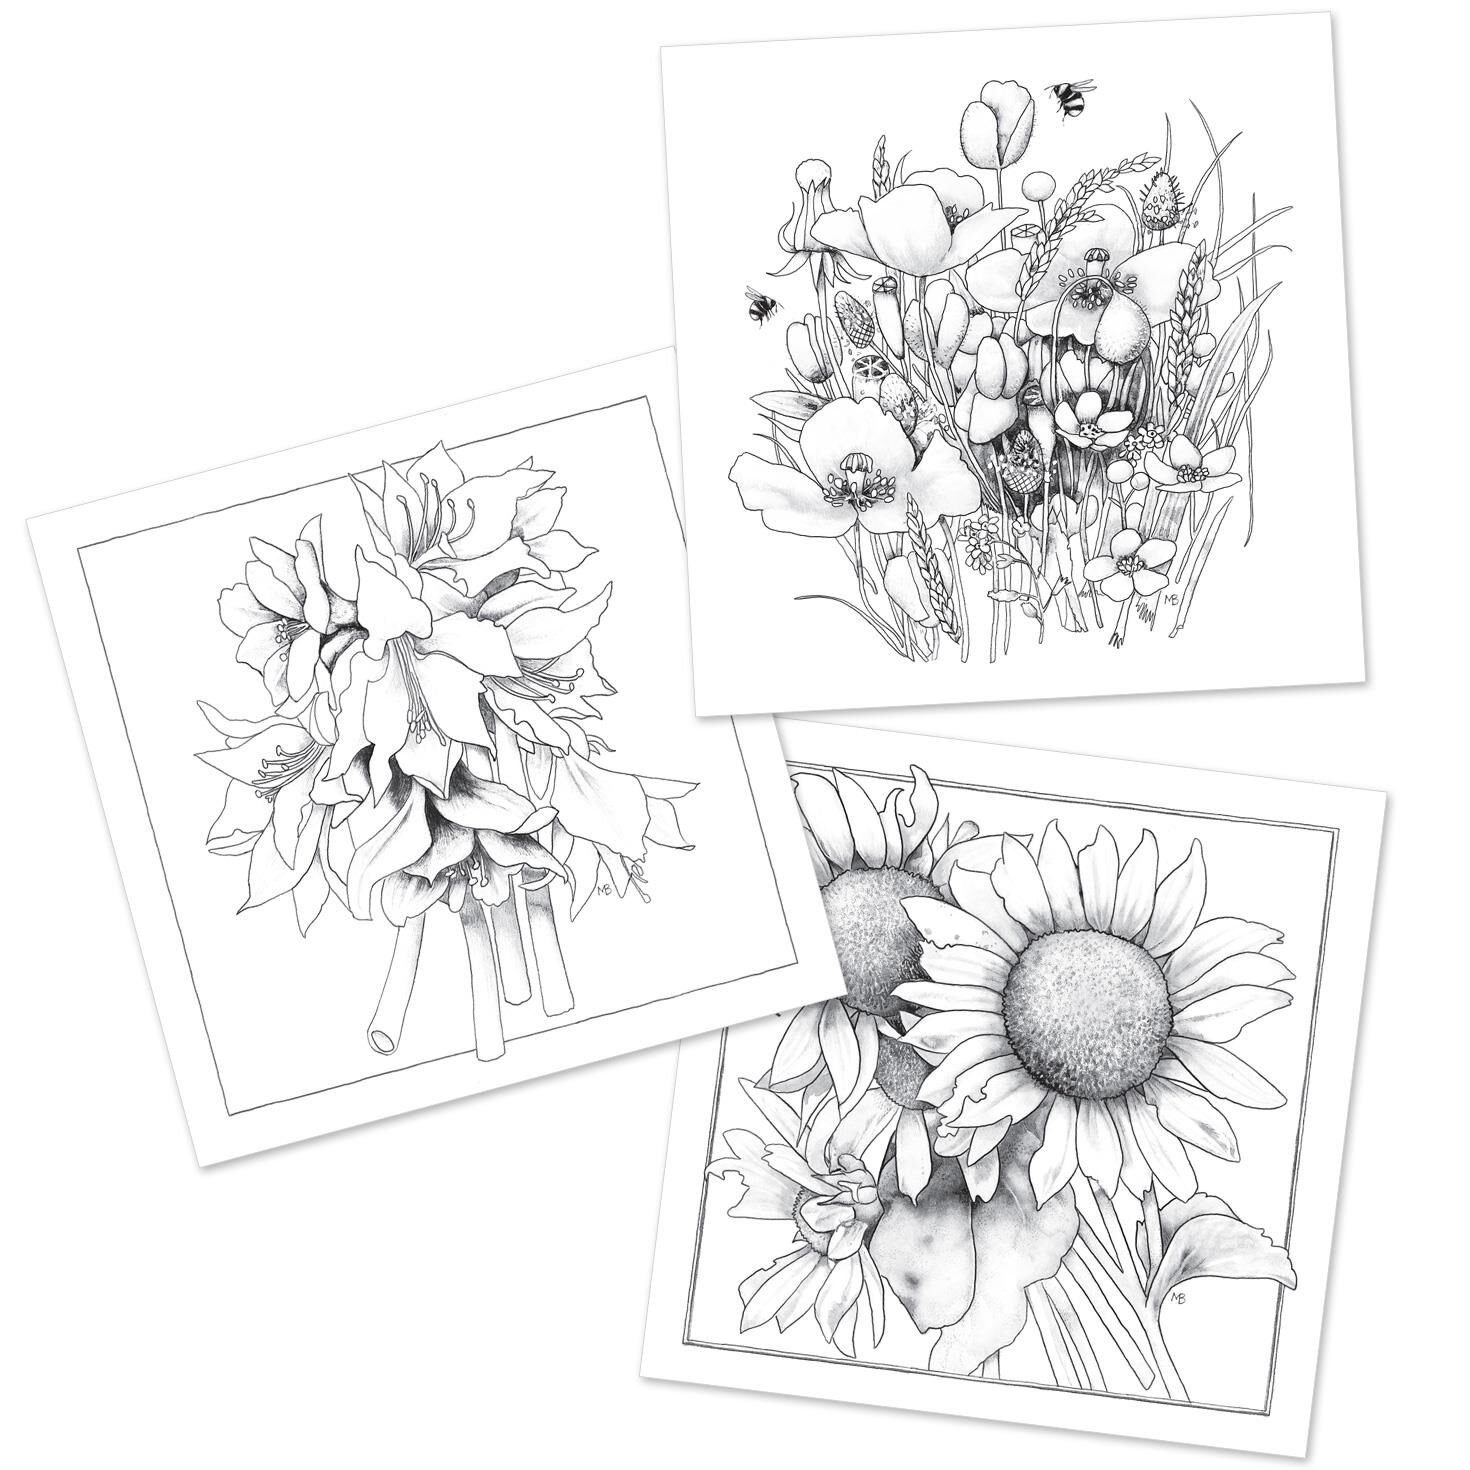 Unusual The Color Of Magic Book Small Psychedelic Coloring Book Flat Flower Coloring Book Marvel Coloring Book Young Grateful Dead Coloring Book BrightThe Color Purple Book Review The Art Of Nature\u2014A Coloring Book Featuring The Art Of Marjolein ..